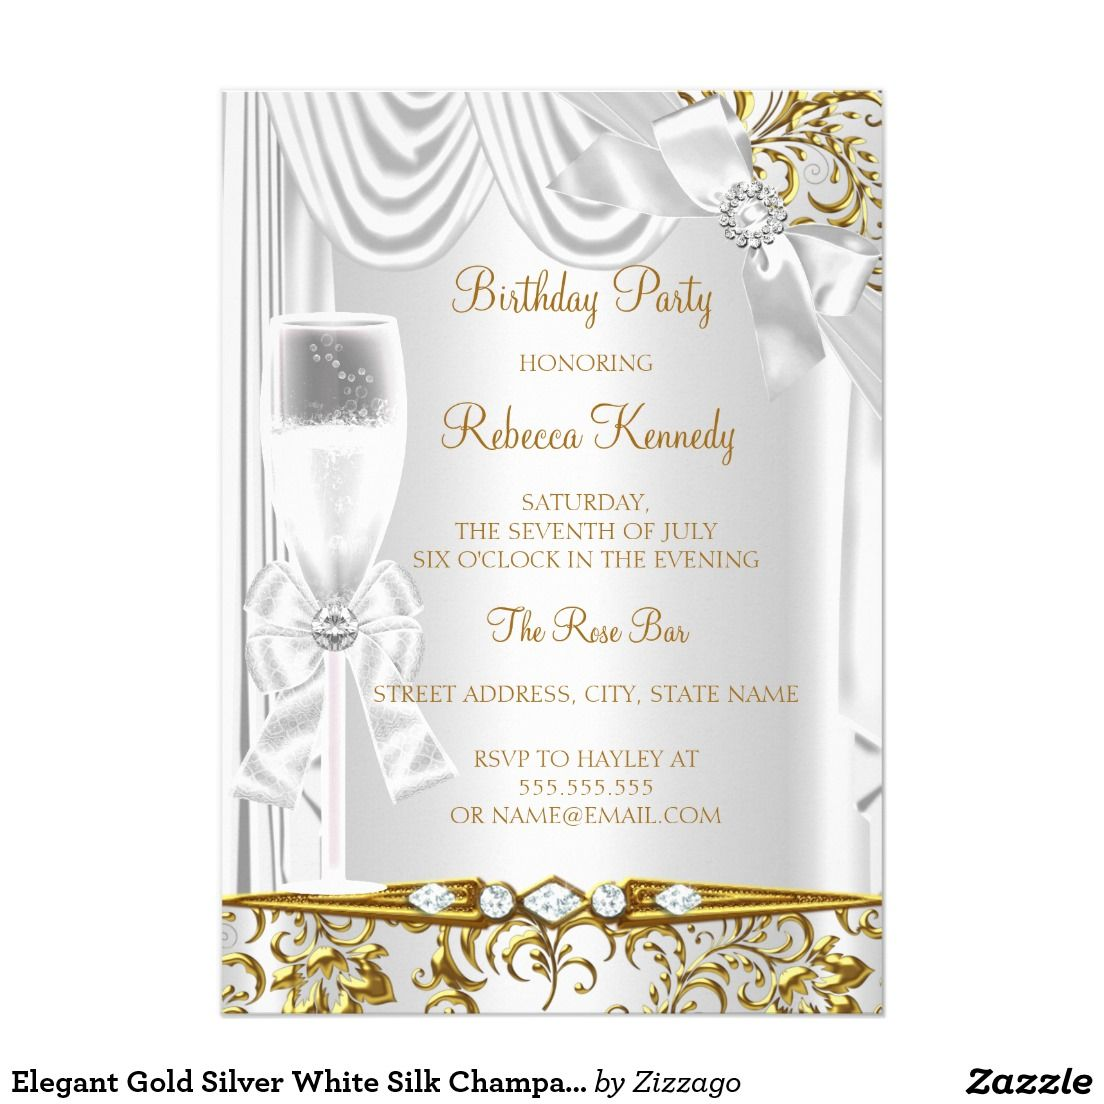 Elegant gold silver white silk champagne birthday 5x7 paper elegant gold silver white silk champagne birthday 5x7 paper invitation card stopboris Image collections